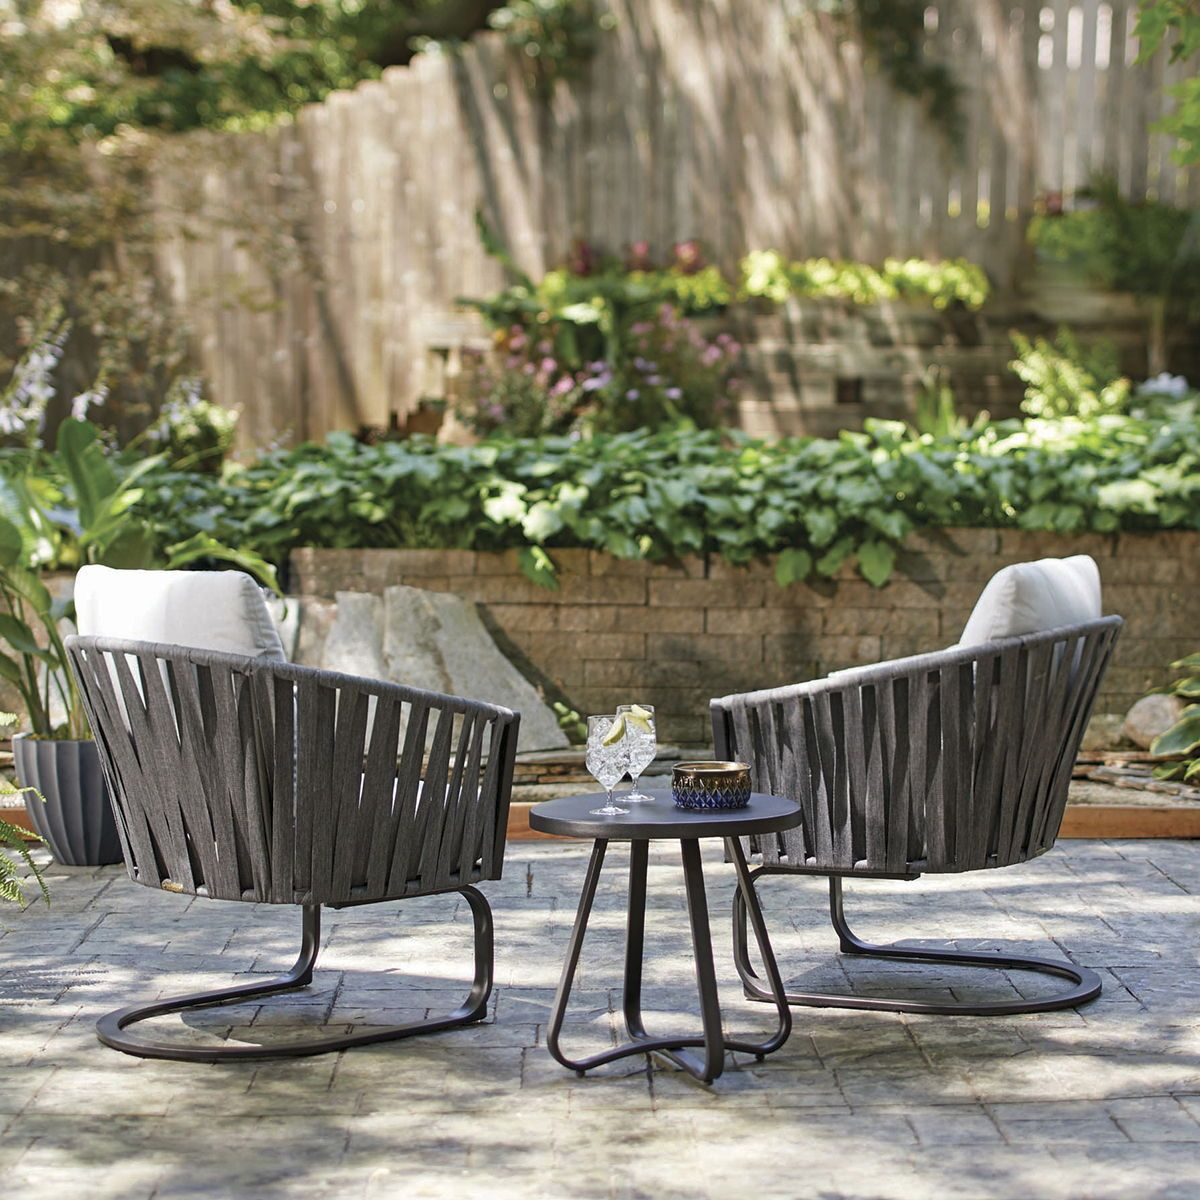 Patio Garden Outdoor Furniture Sets Better Homes Gardens Patio